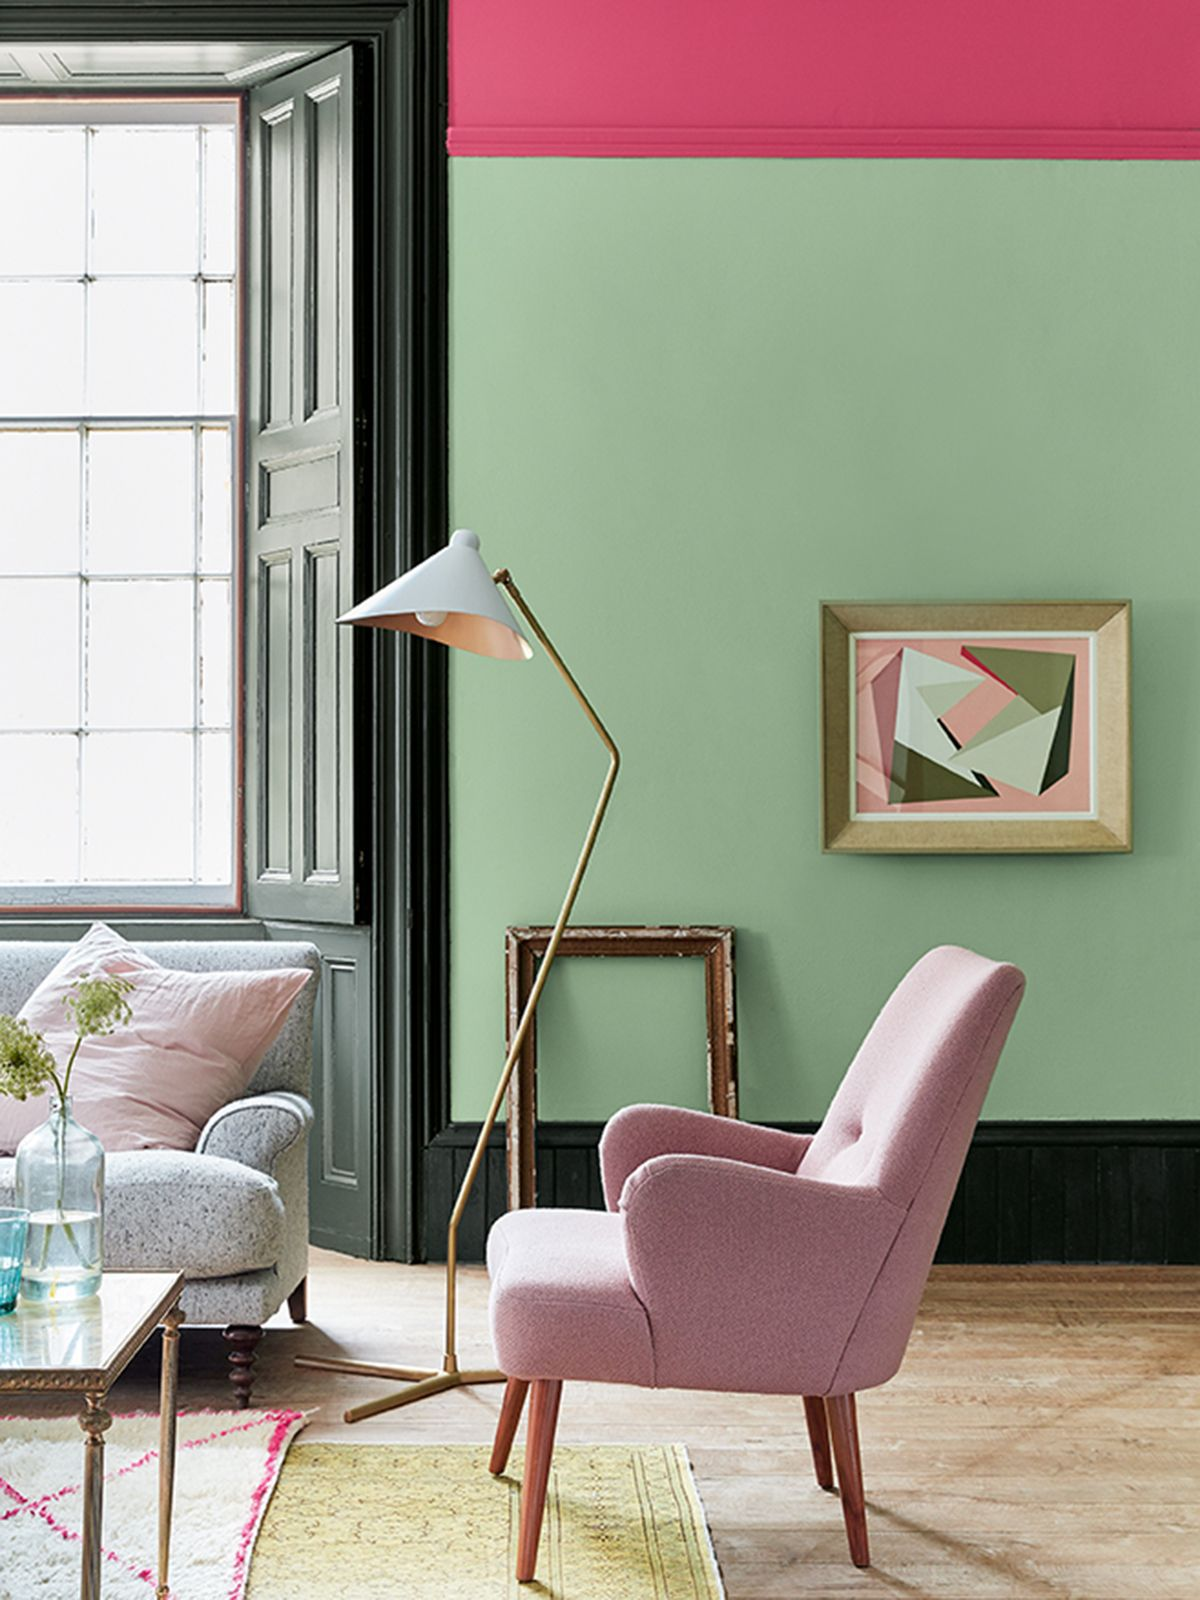 My Latest Colour Crush Is Mint Green For It S Fresh Uplifting Tone This Pastel Shade Works Extremely We Living Room Green Small Room Design Living Room Paint